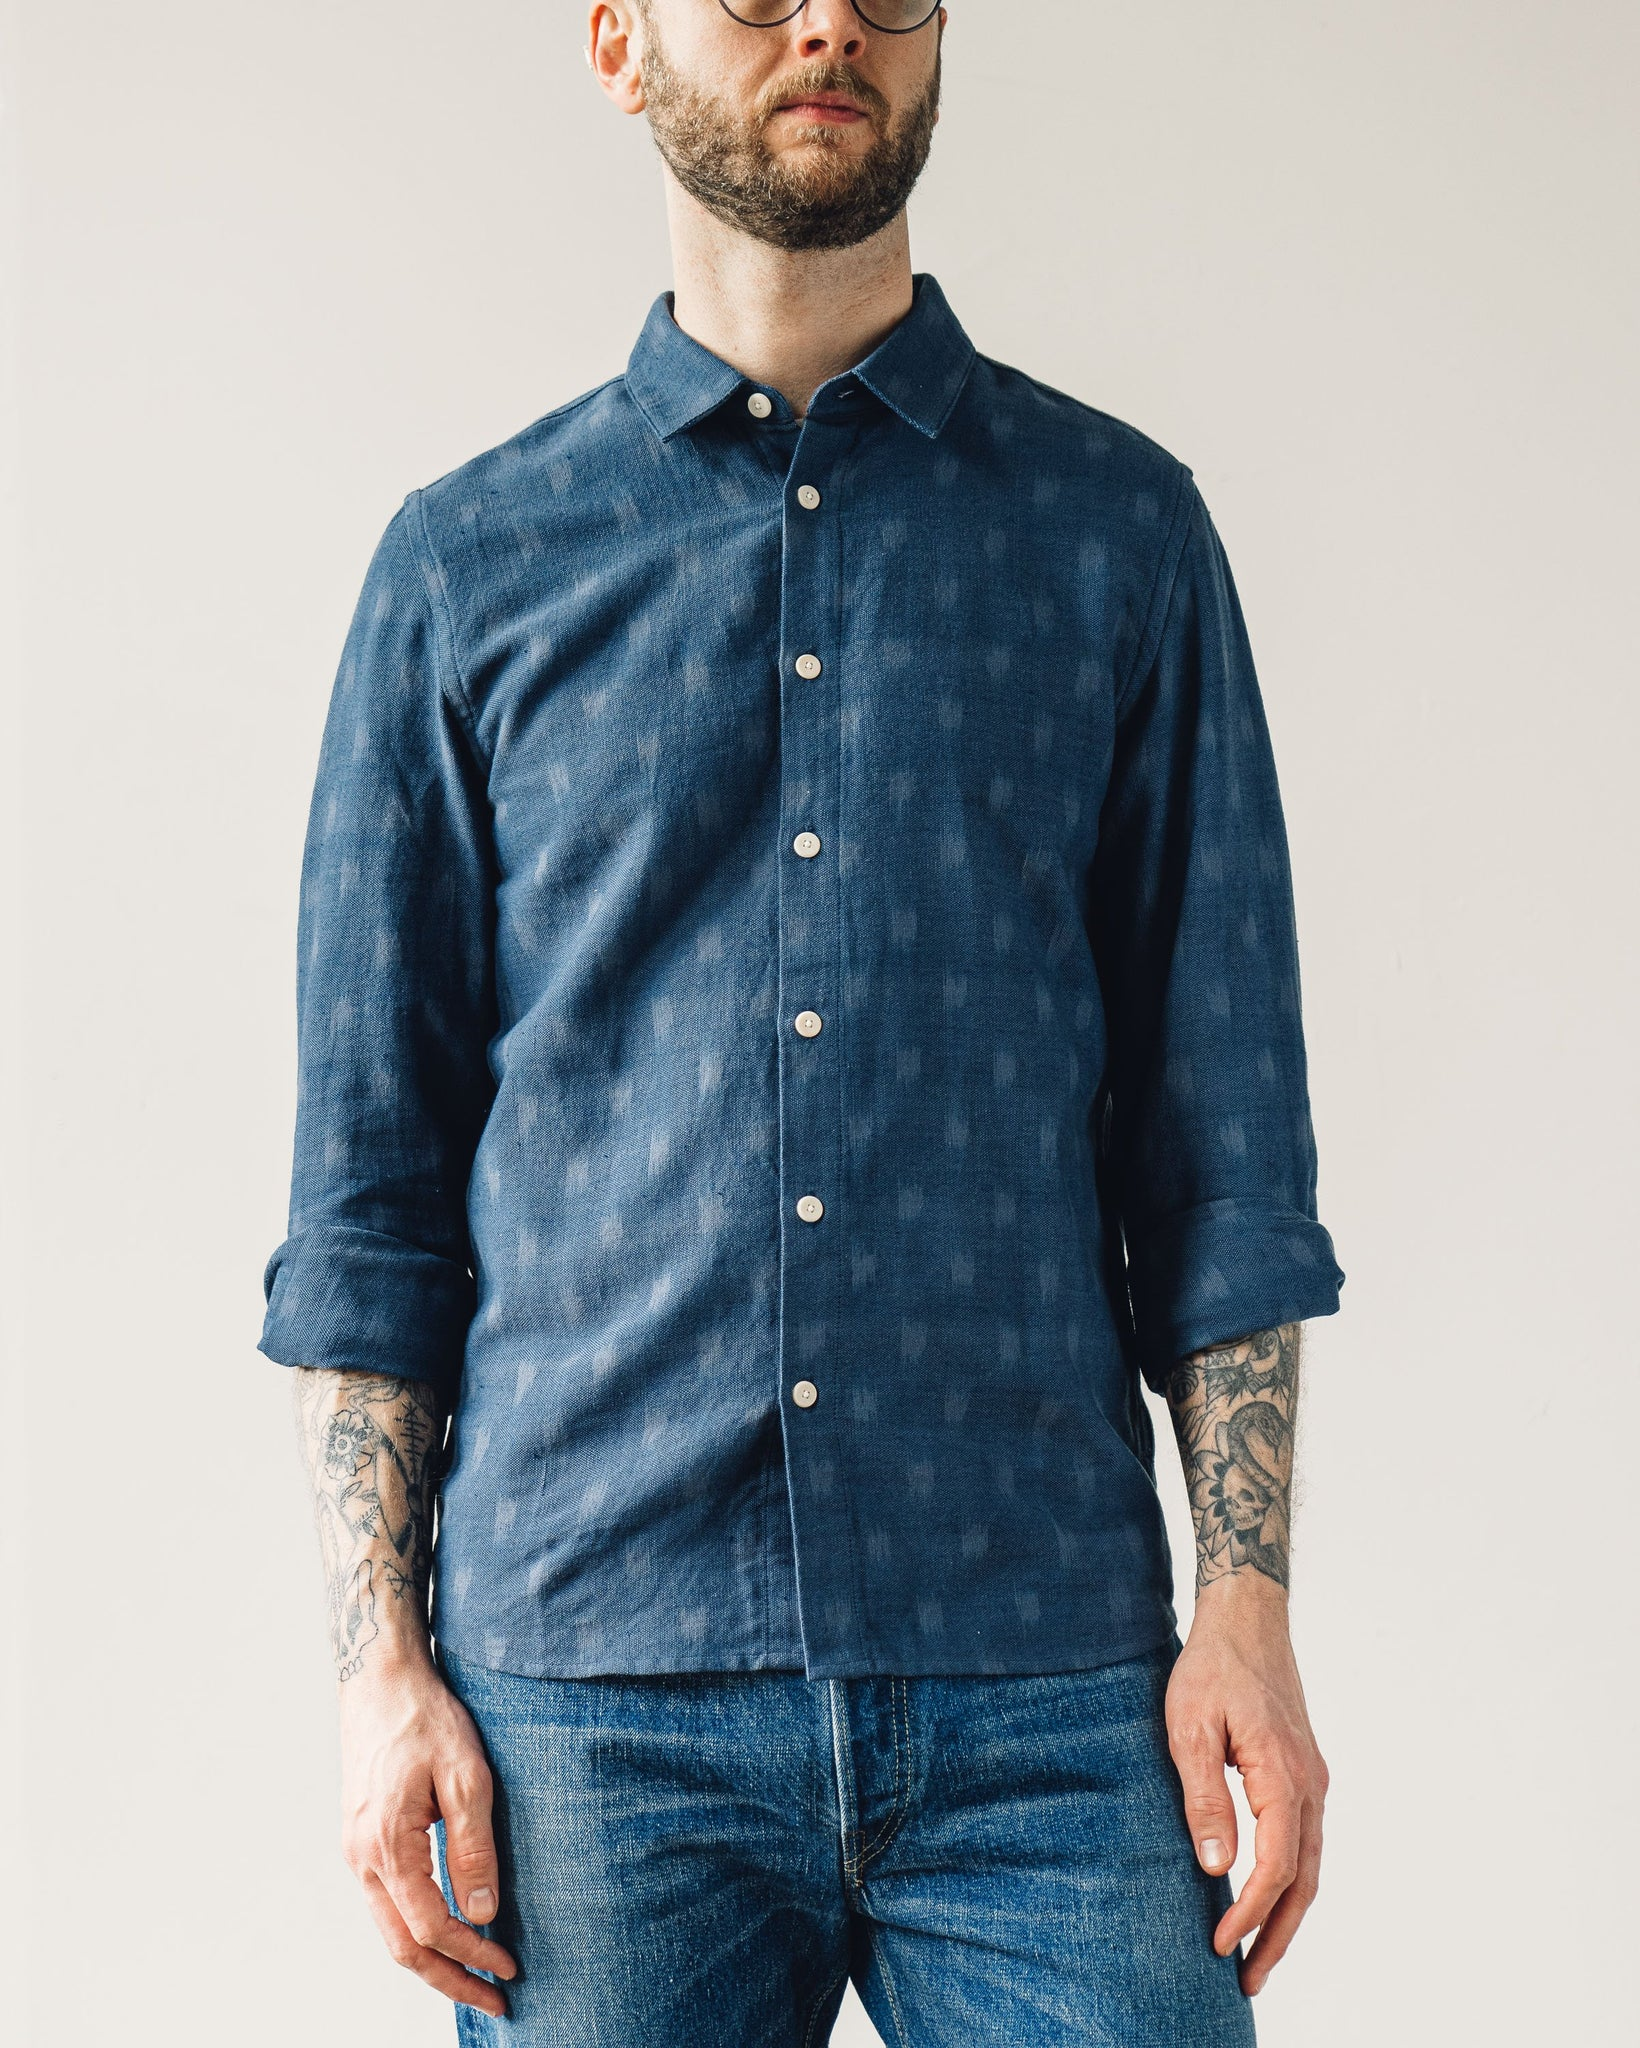 Folk Orb Shirt, Overdye Oxford Grid Ikat